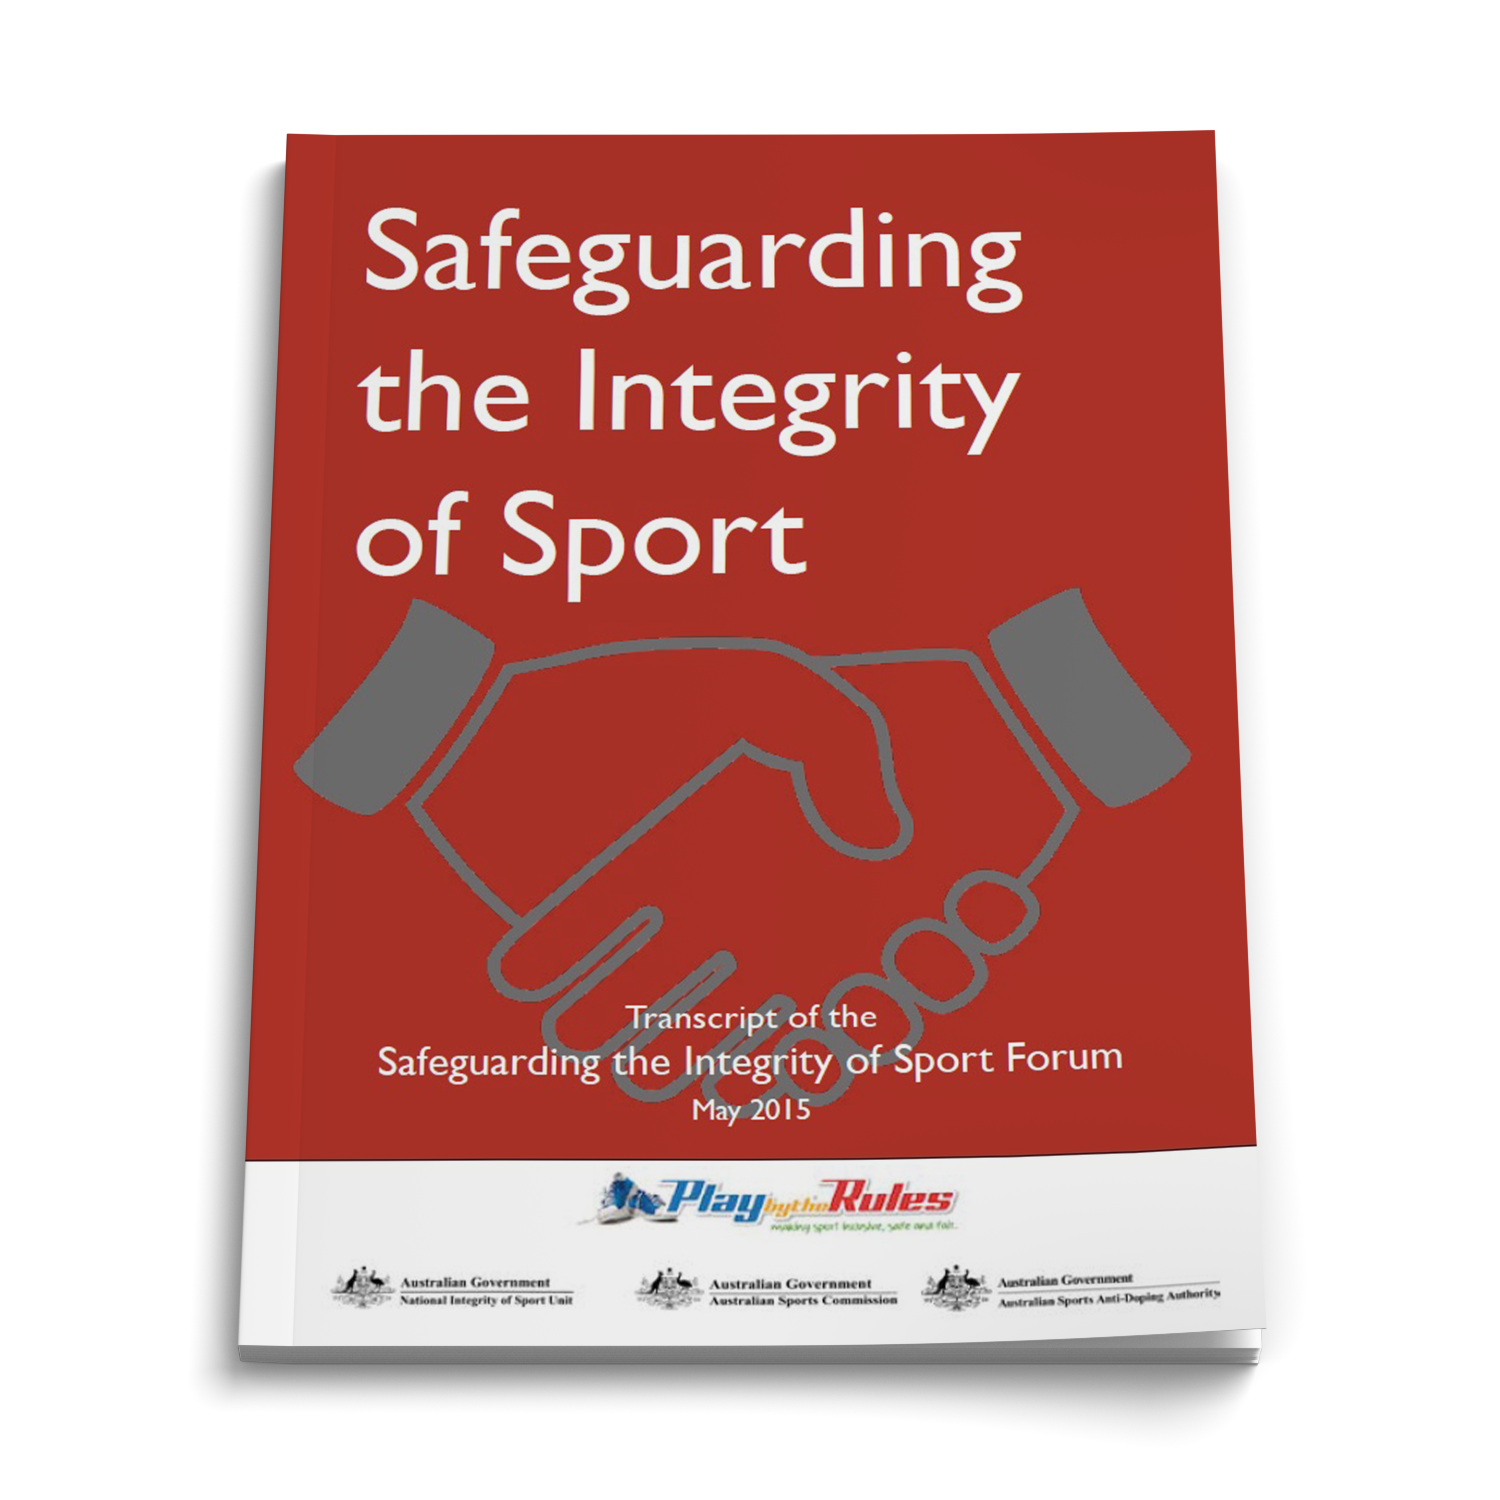 Safeguarding the Integrity of Sport